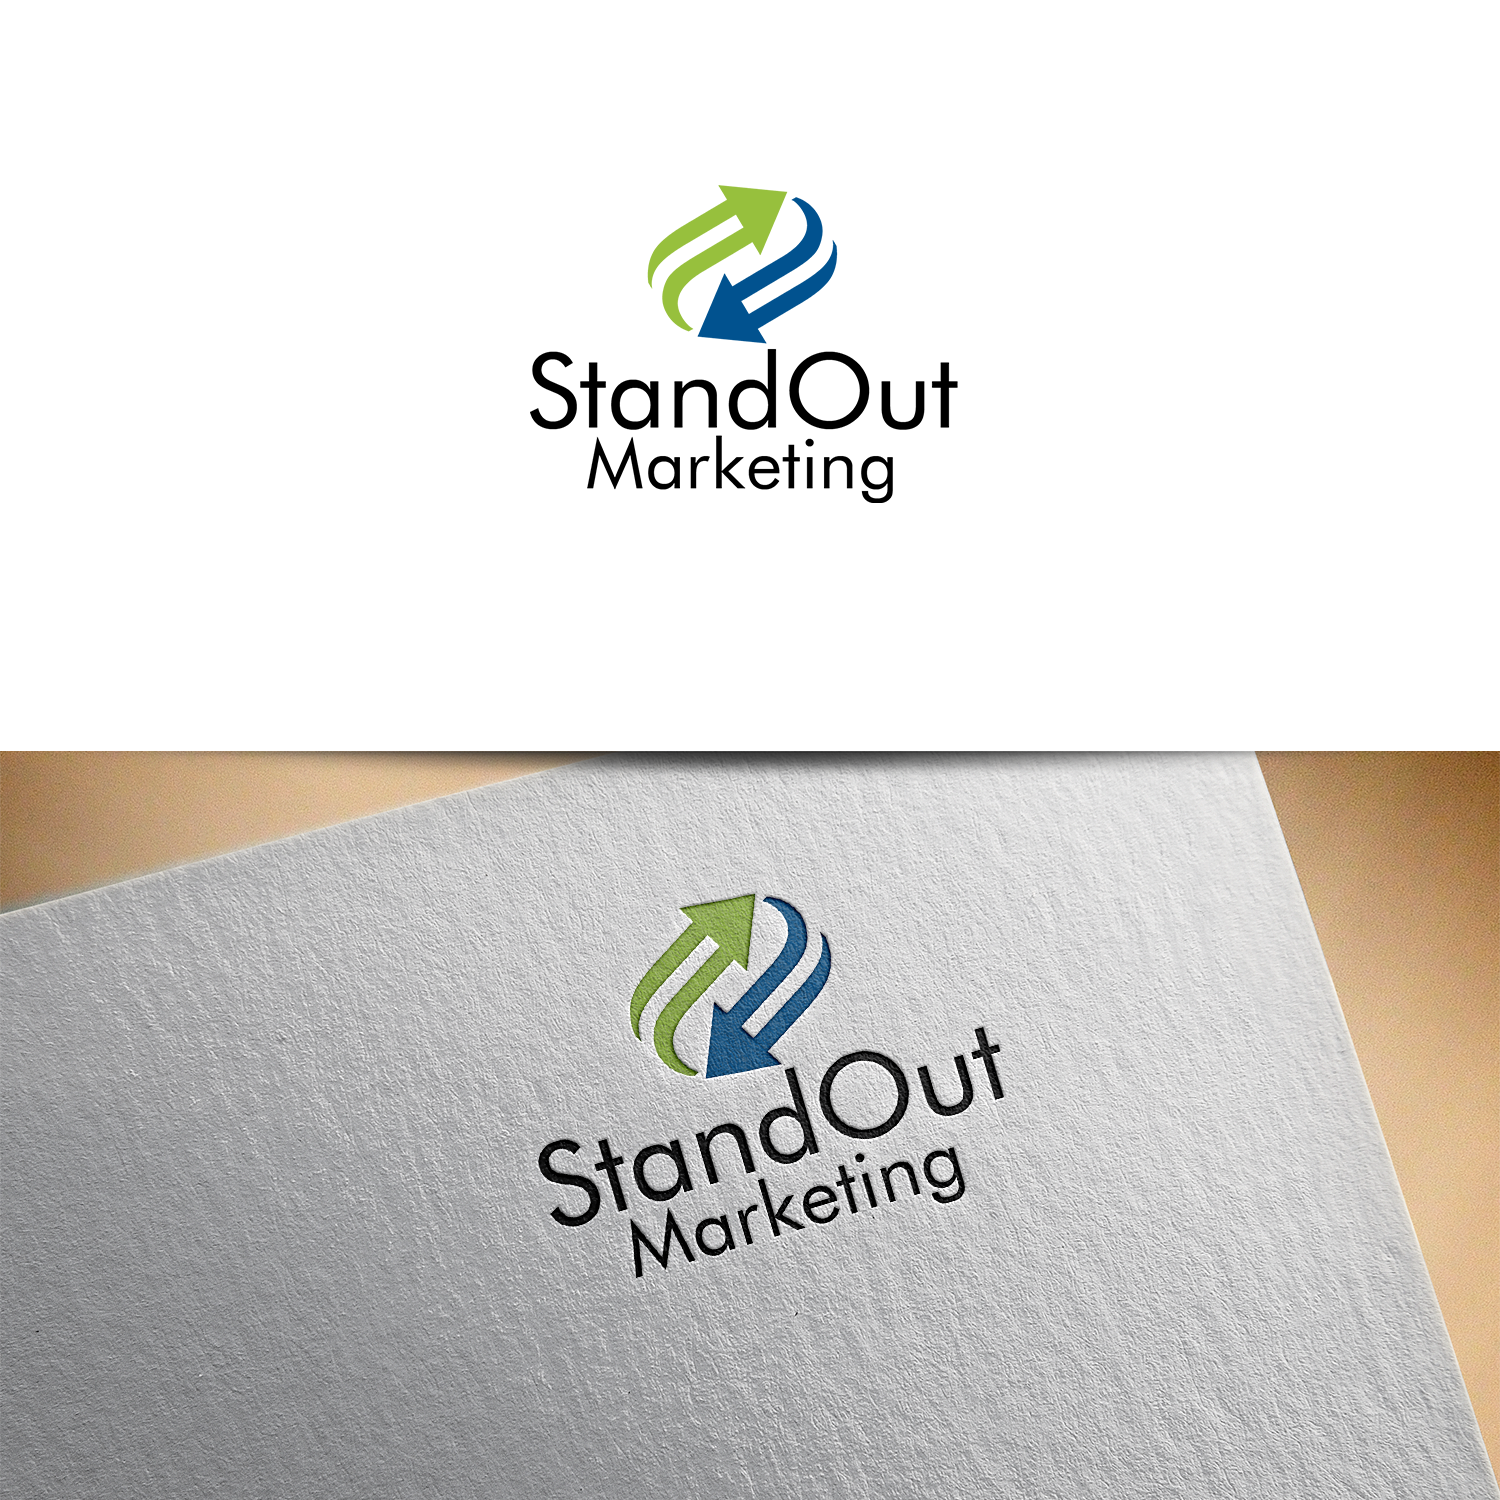 modern professional marketing logo design for standout marketing